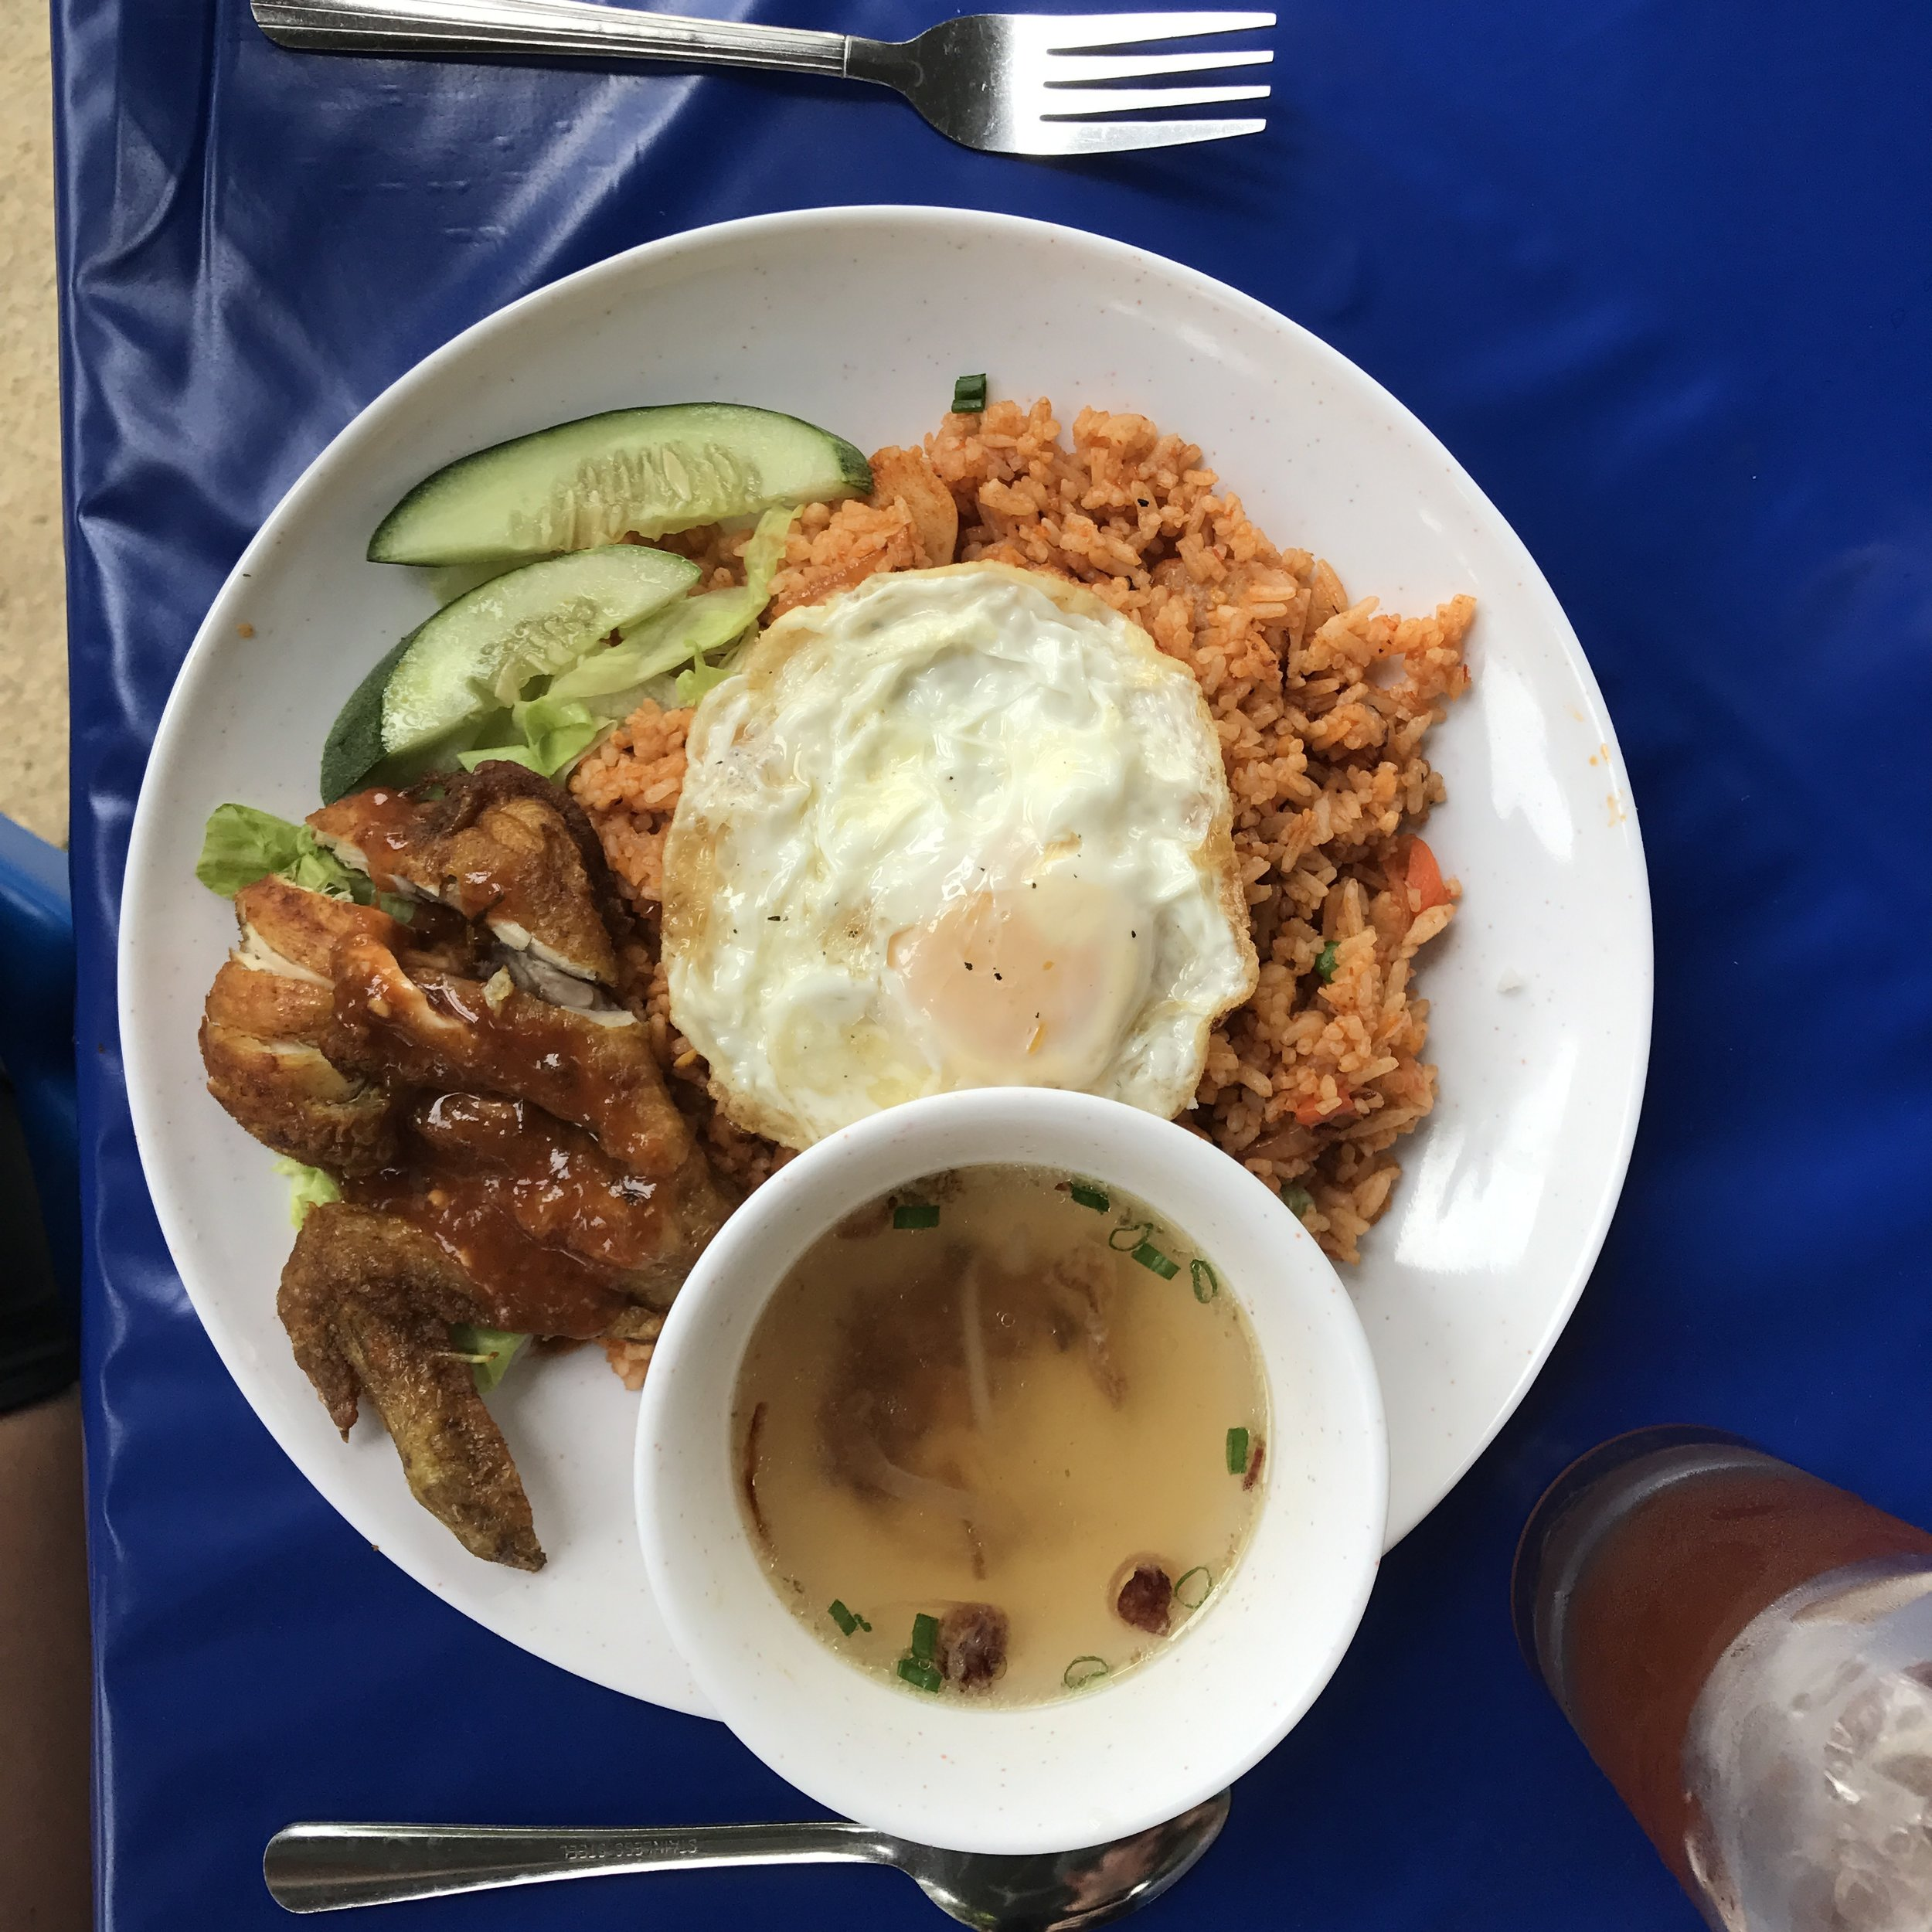 Simple roadside meals - chicken, rice, and a fried egg.